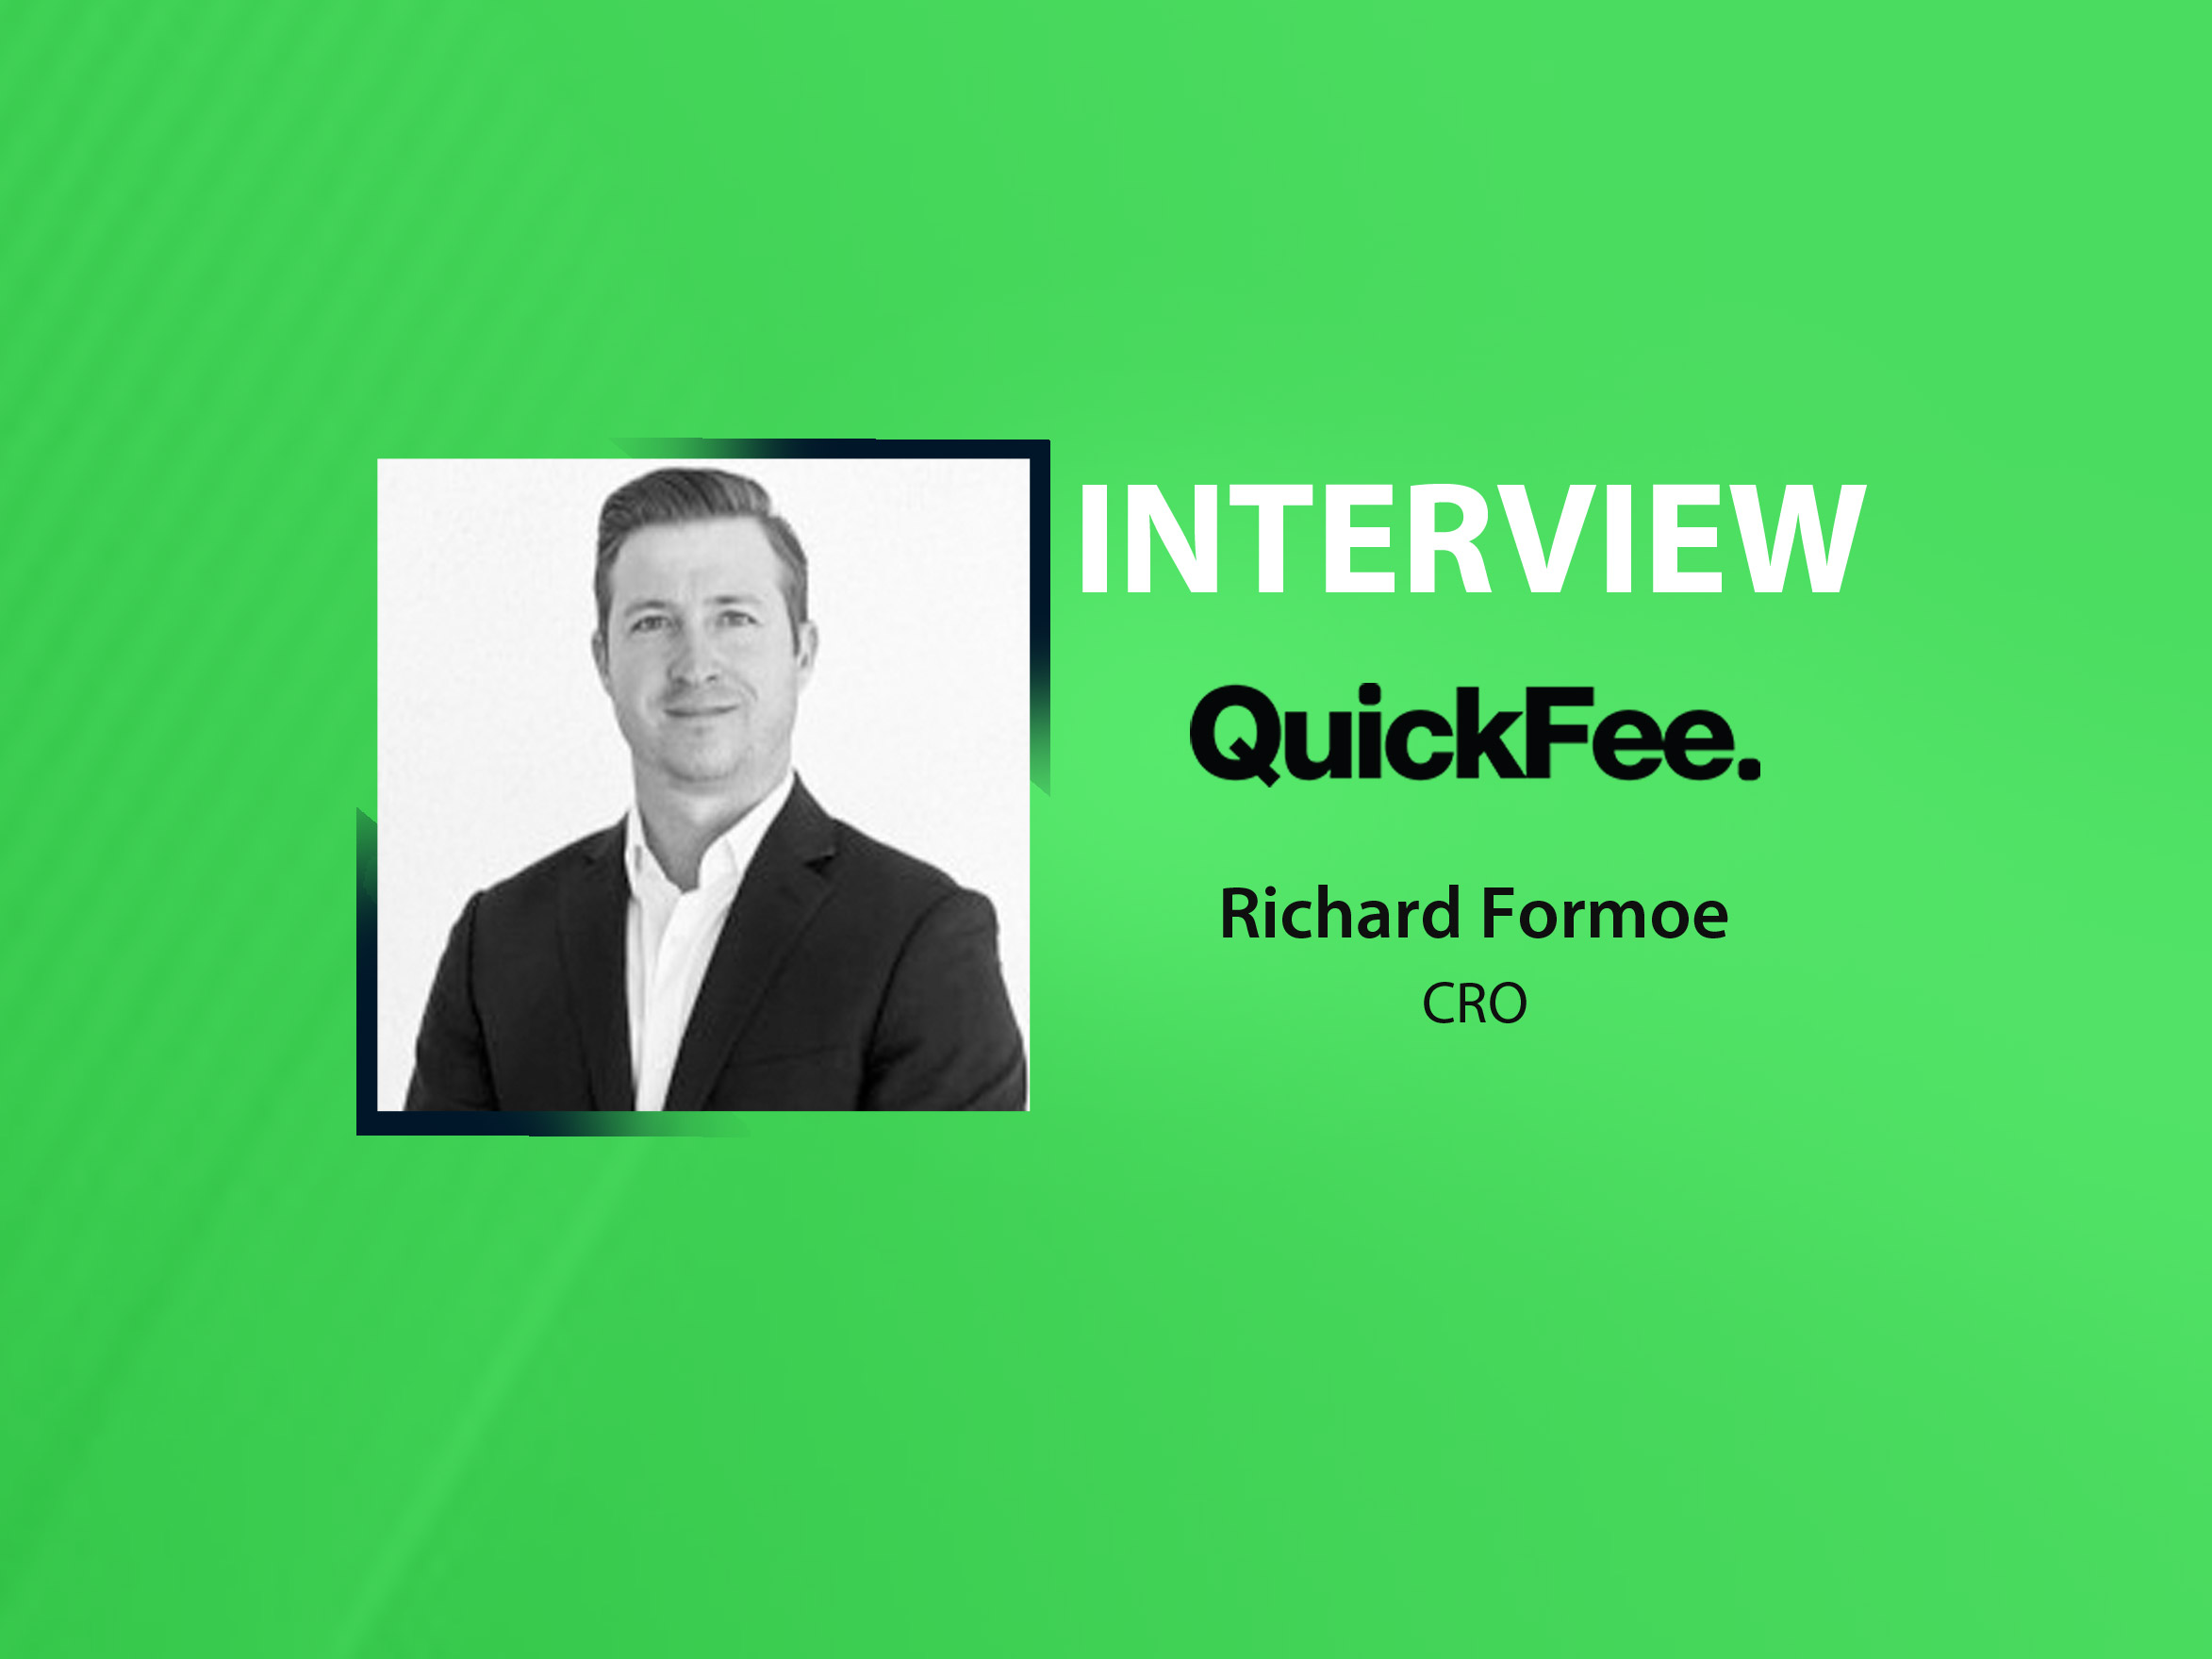 GlobalFintechSeries Interview with Richard Formoe, Chief Revenue Officer at QuickFee